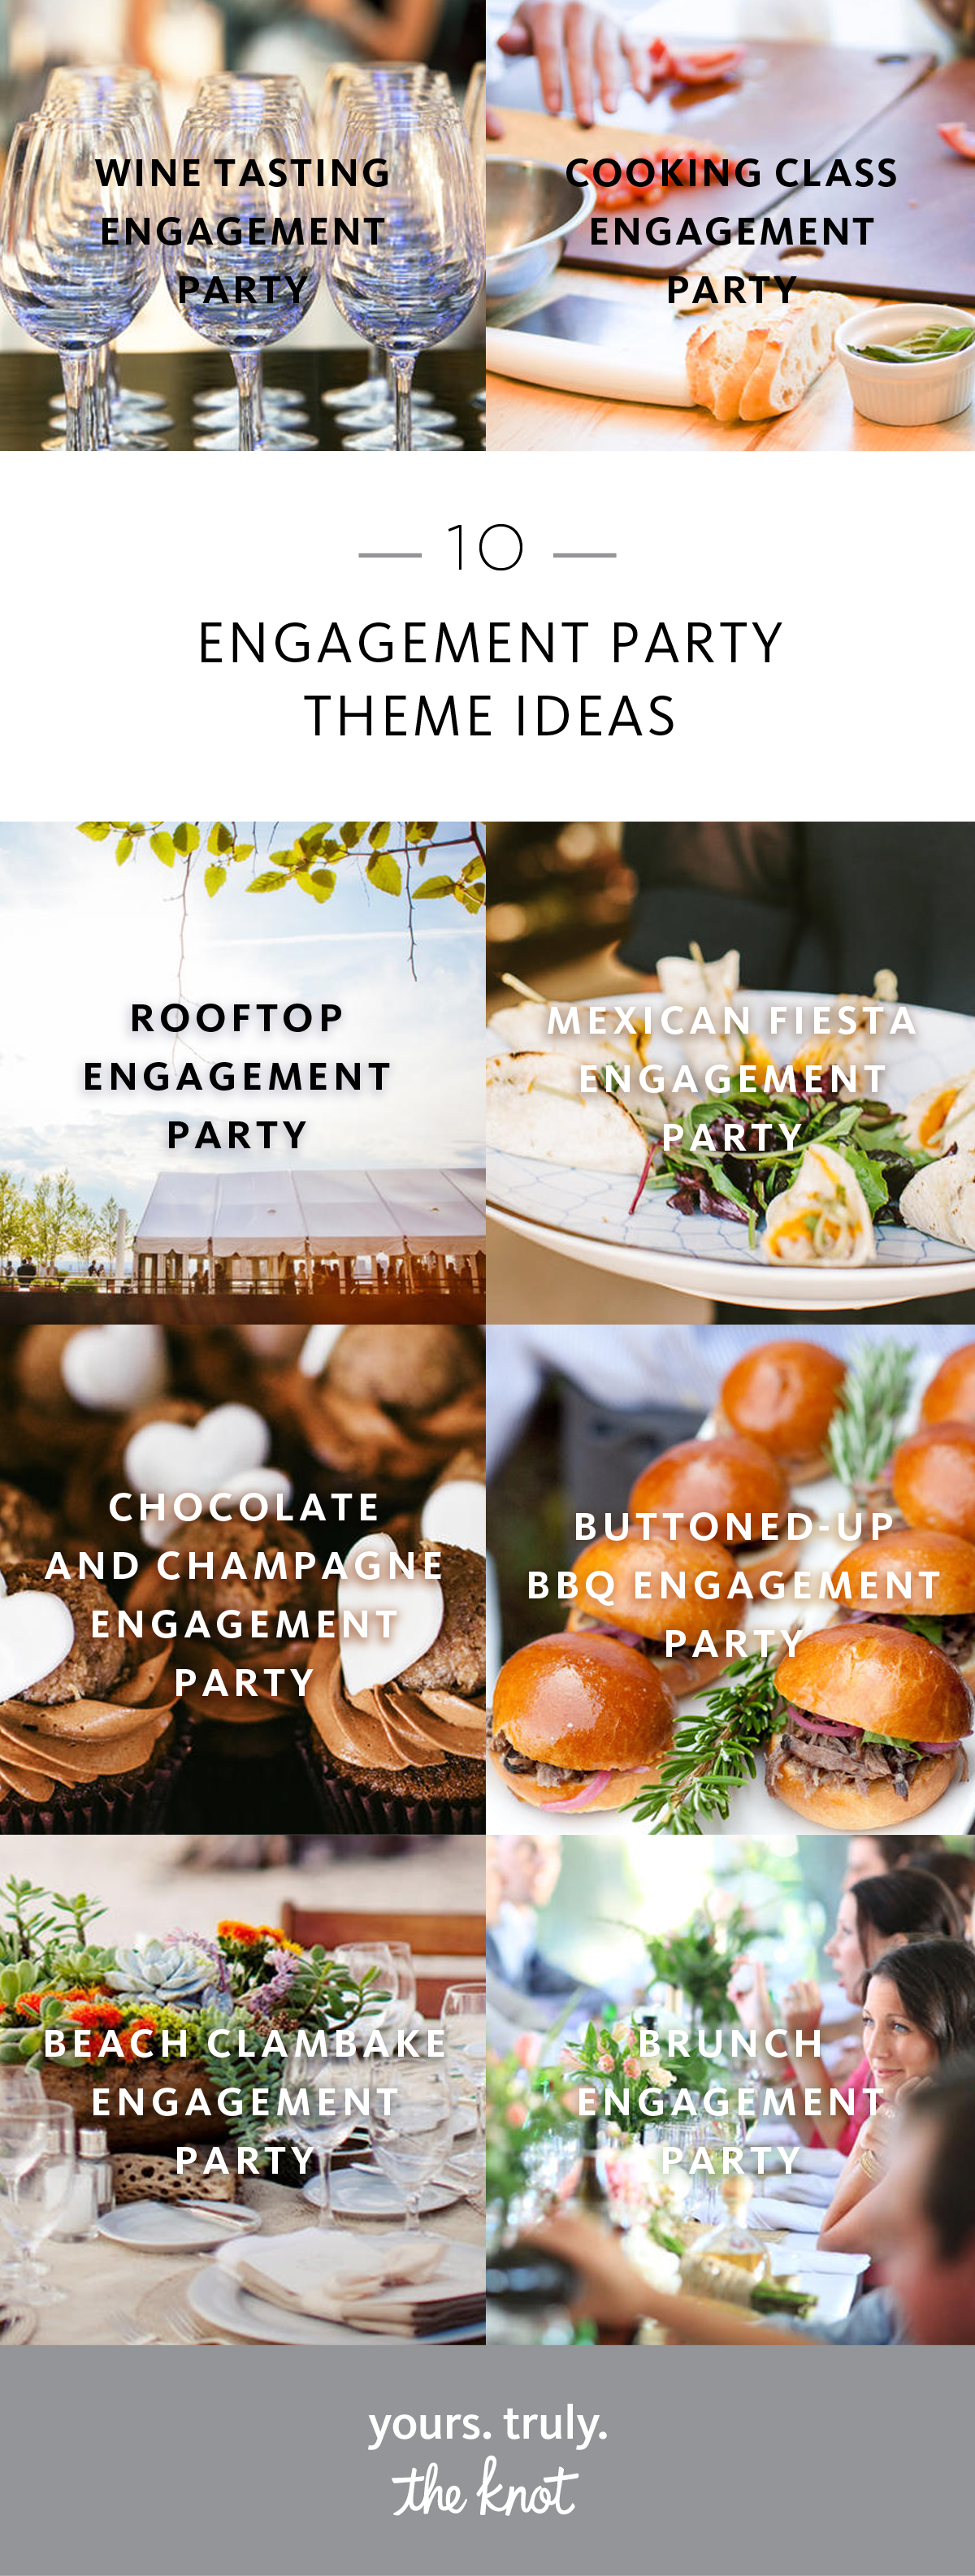 10 engagement party theme ideas engagement key and couples